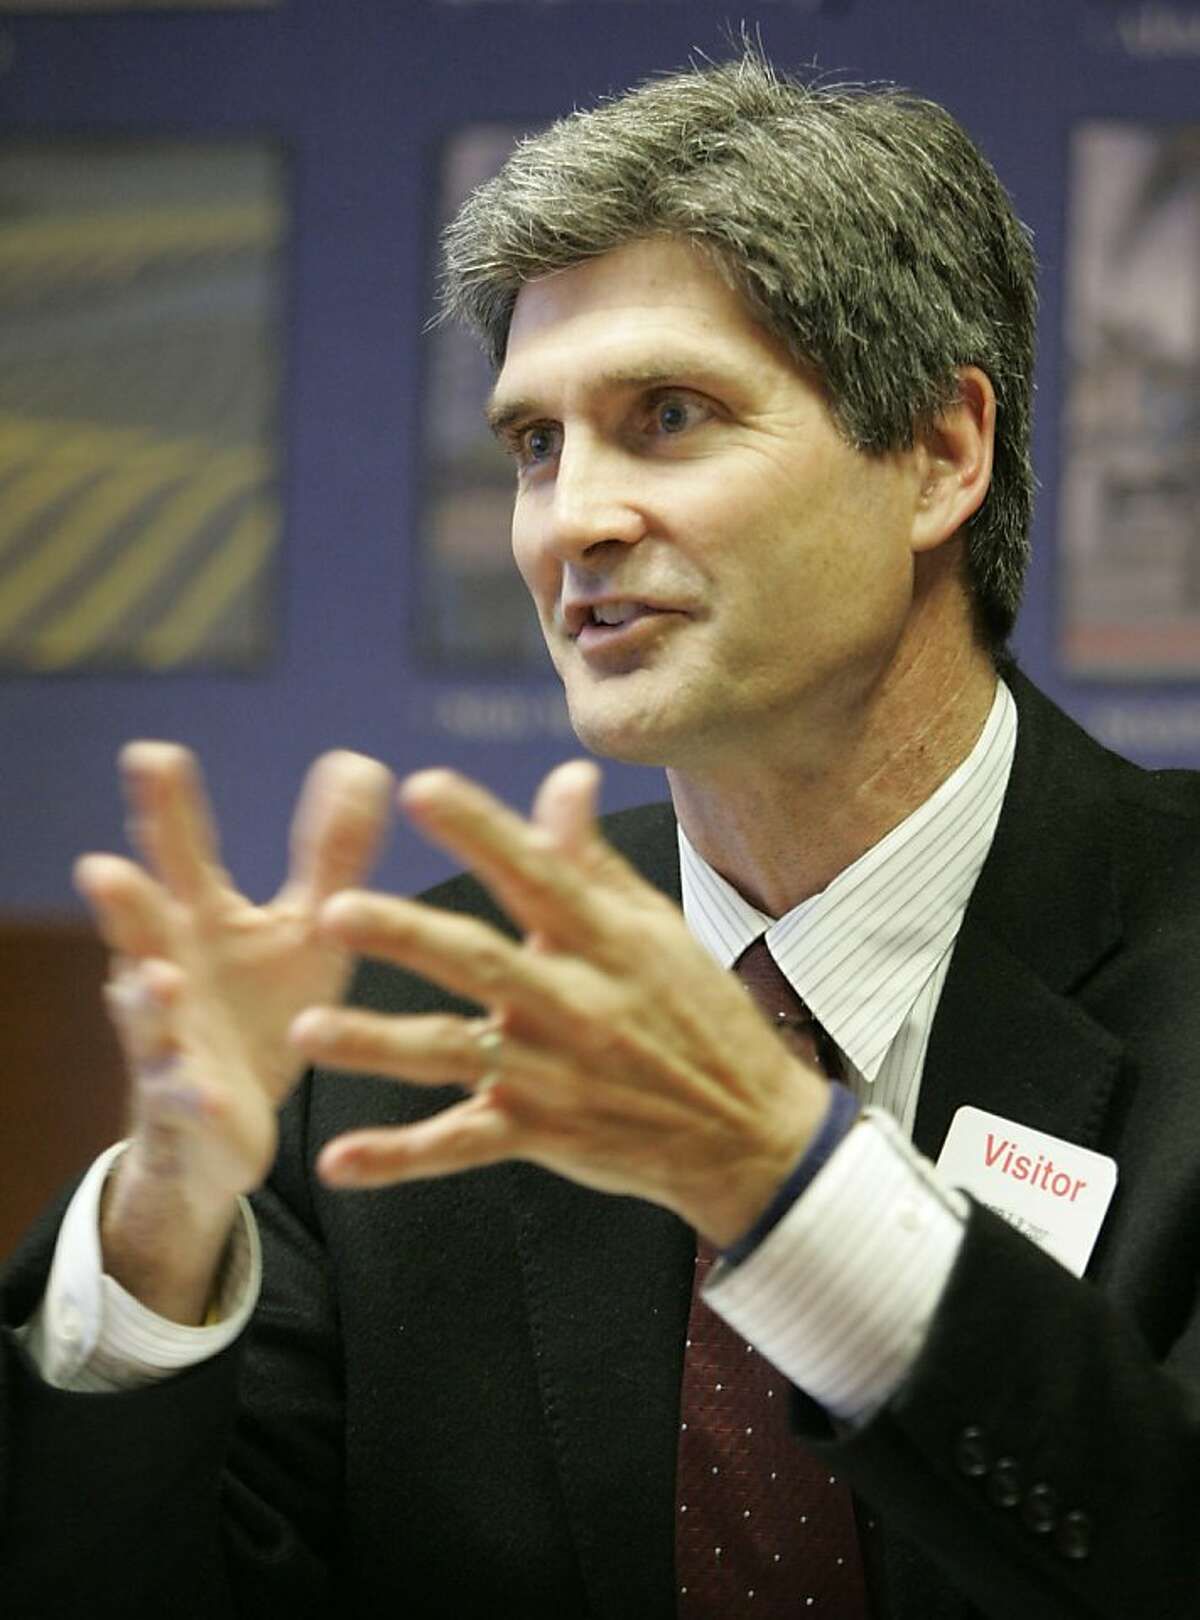 Carl Guardino, president and CEO of the Silicon Valley Leadership Group talks with the Chronicle business reporters at the Chronicle offices on Thursday, April 19, 2007.